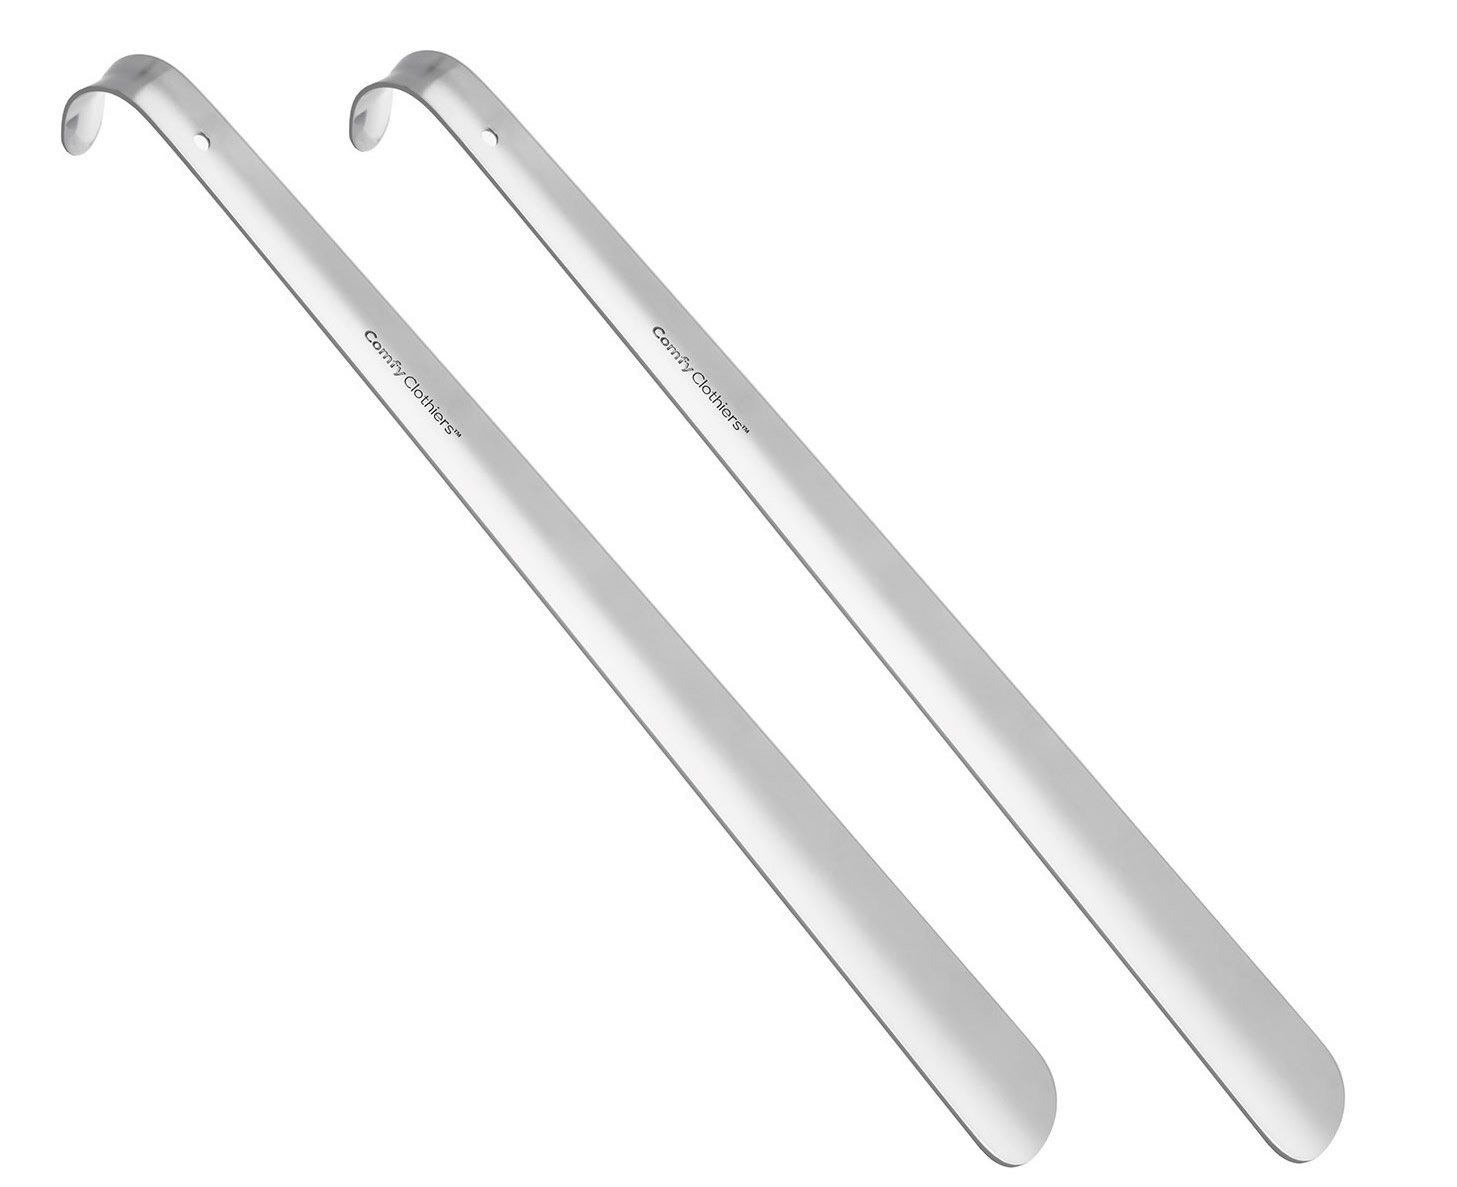 Comfy Clothiers 18-Inch Long Metal Shoe Horn (2-Pack) Heavy Duty Stainless Steel Long Handle Shoehorn